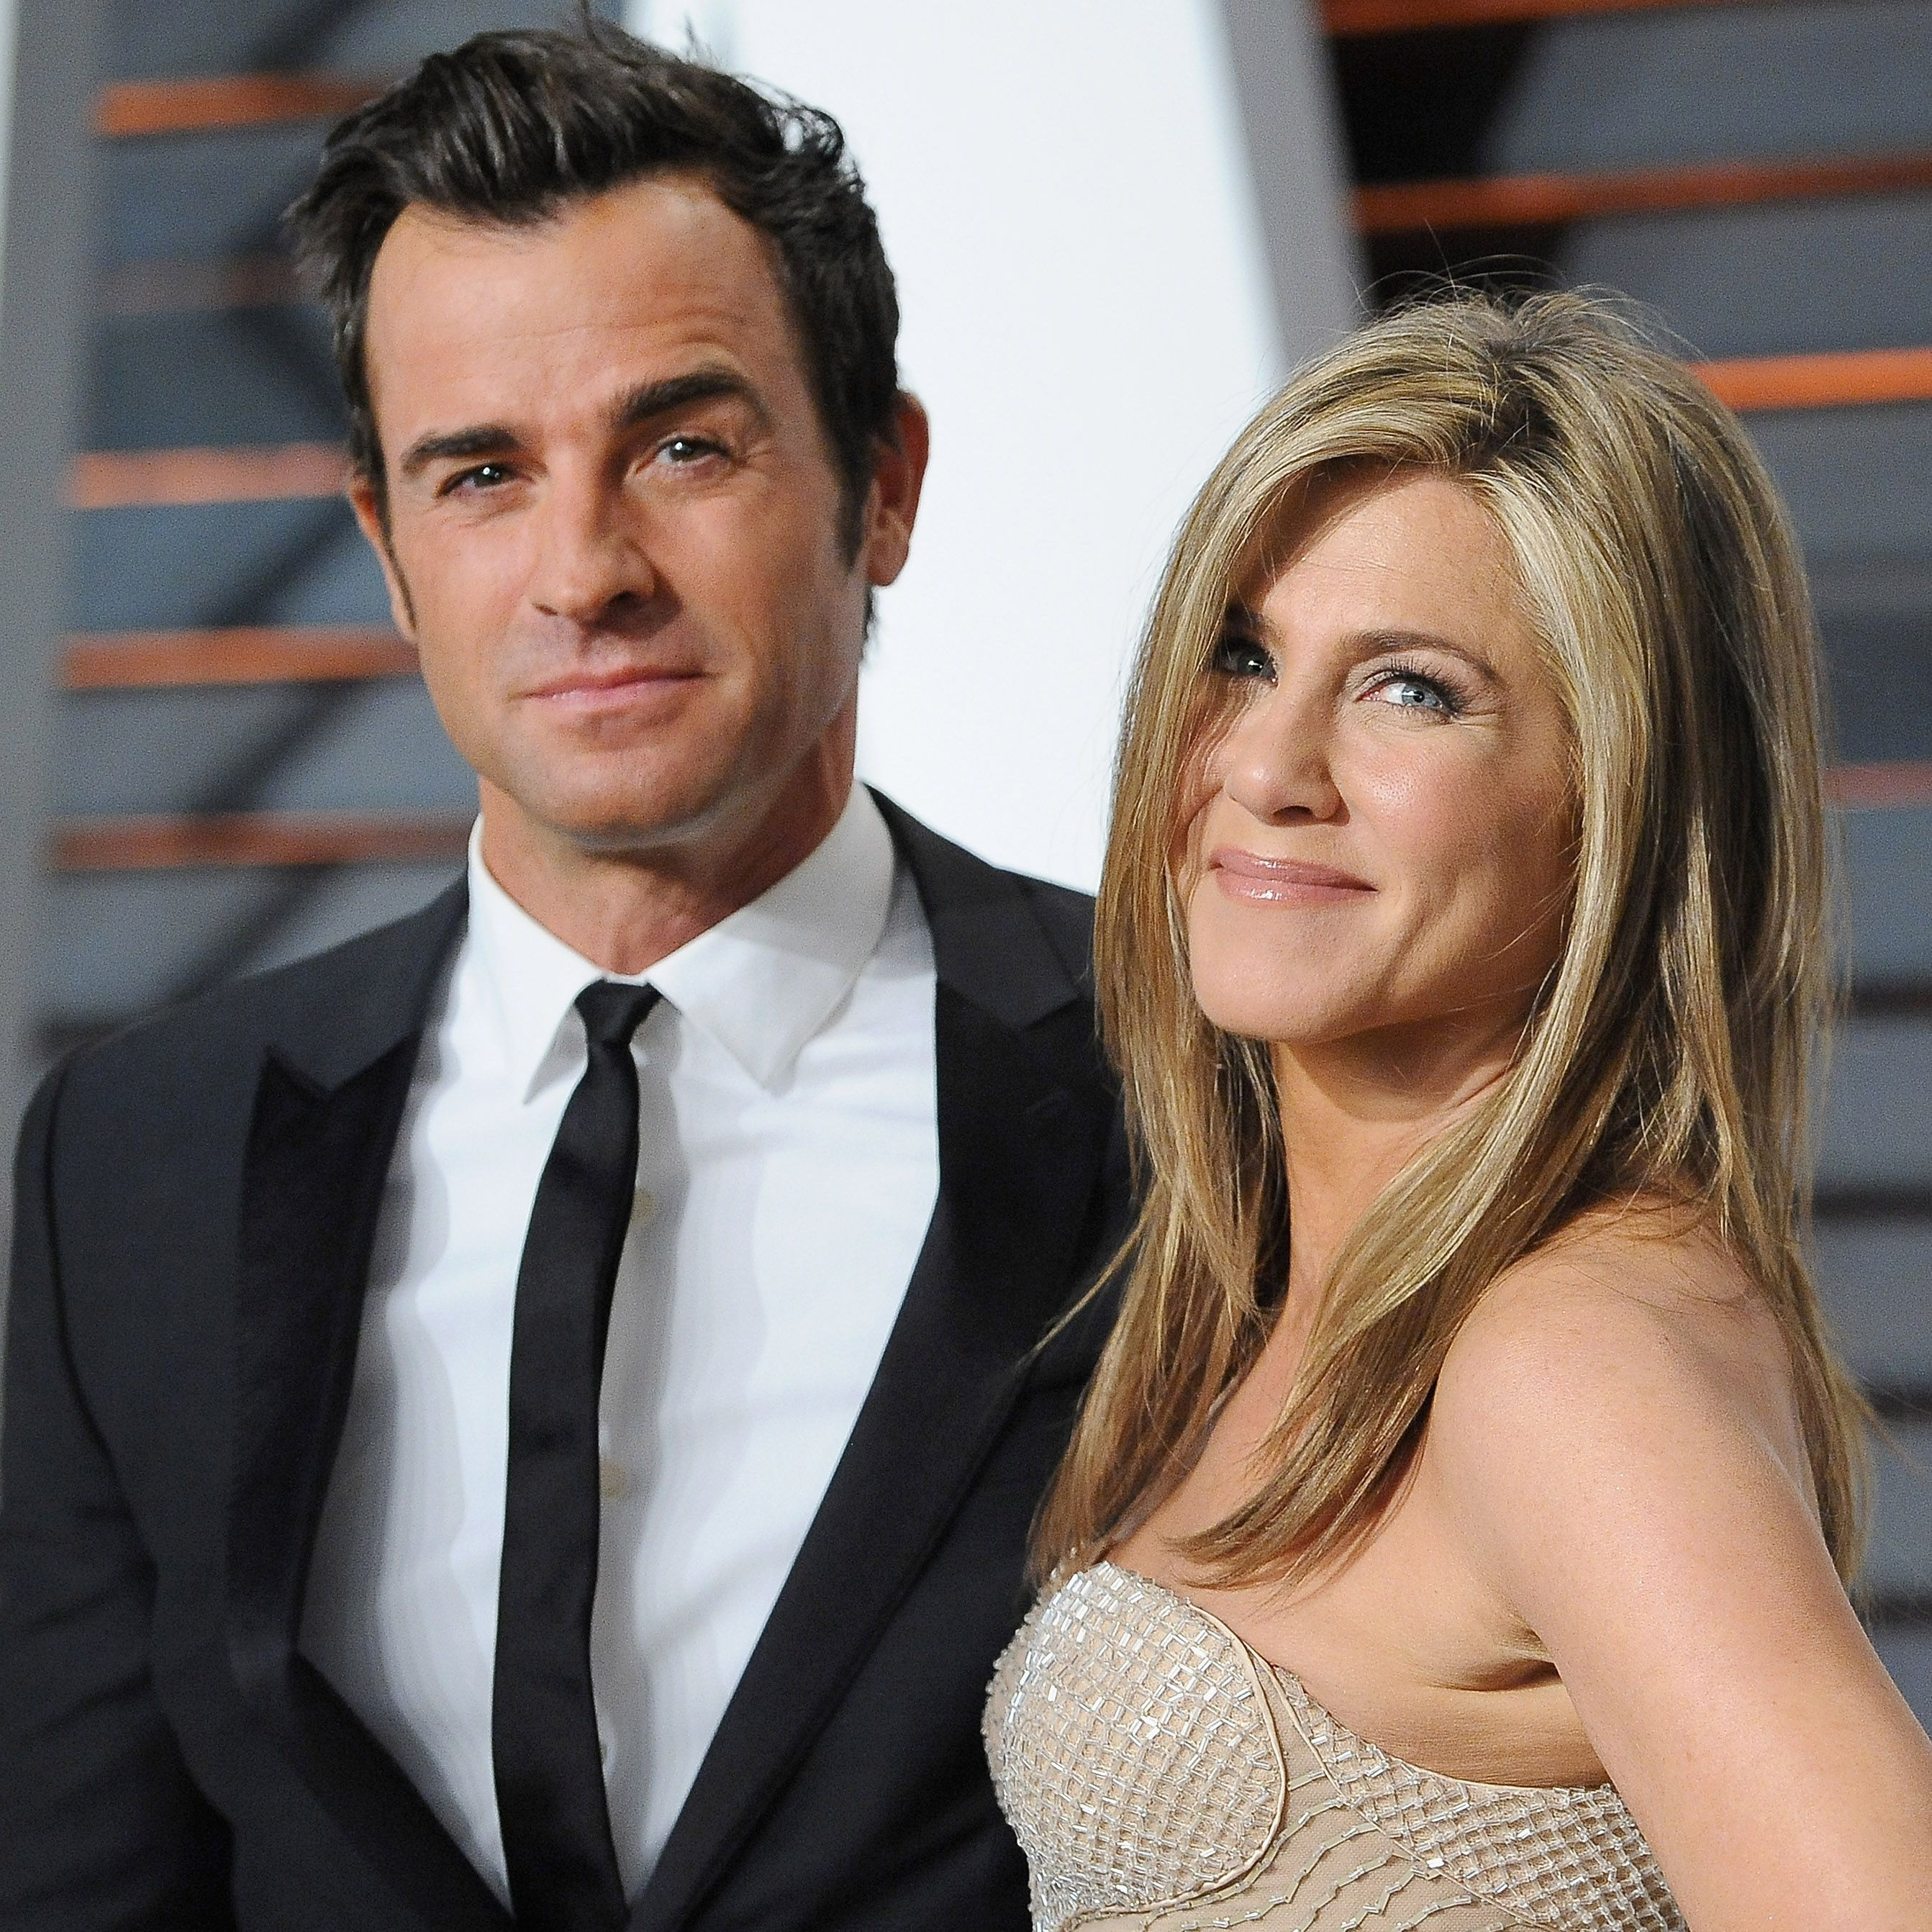 Jennifer aniston dating timeline after divorce